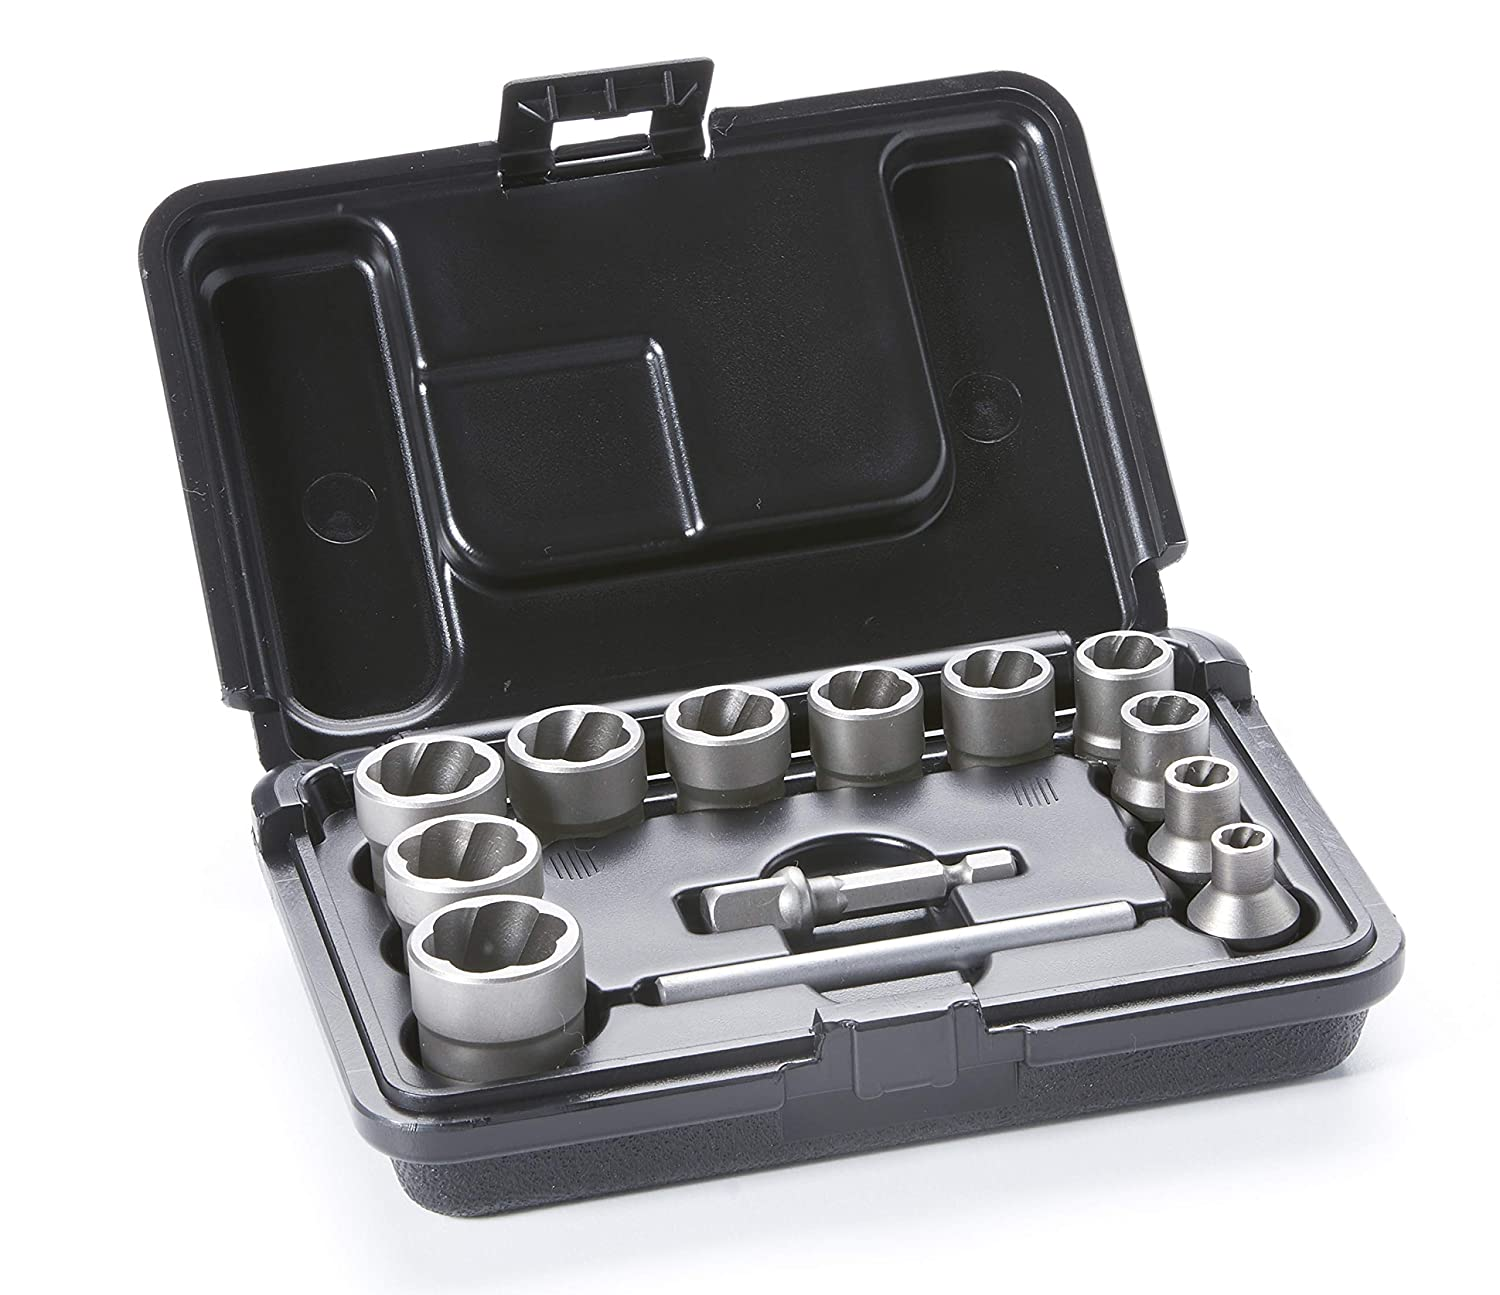 ROCKETSOCKET Impact Bolt & Nut Extractor Set   Remove Damaged Bolts, Nuts & Screws   13 Piece Set - Proudly Made in America